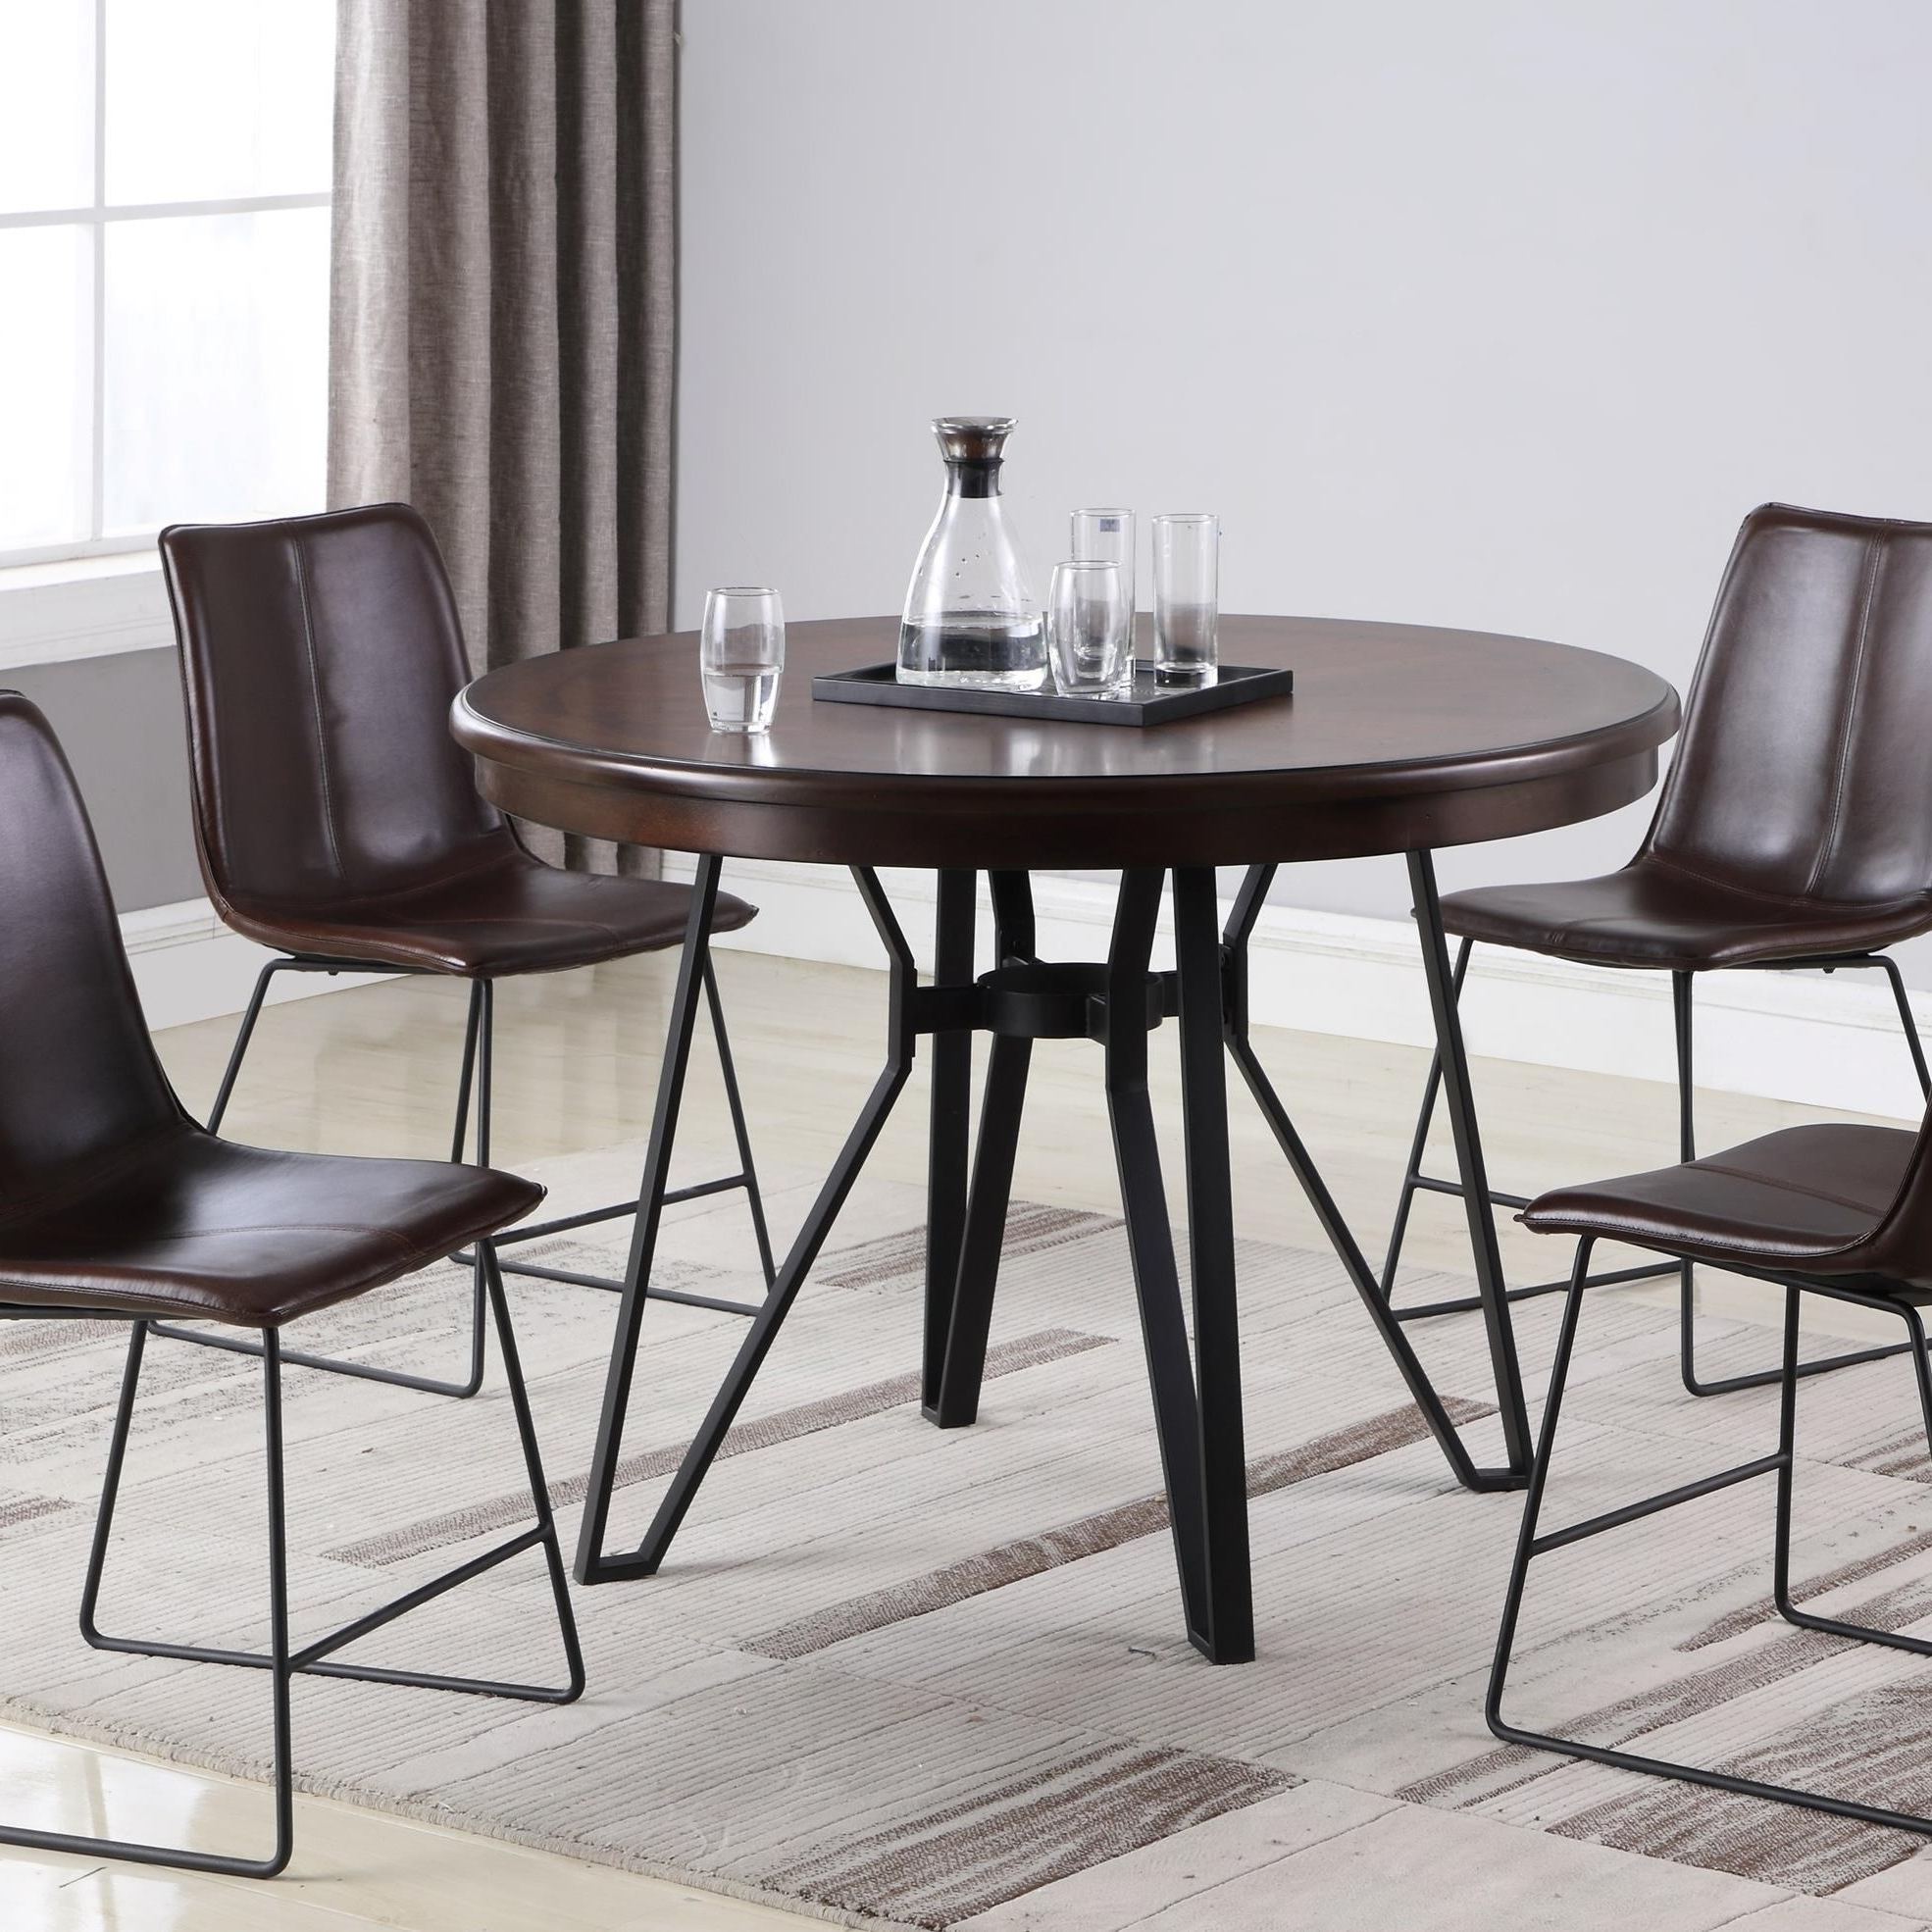 Famous Round Industrial Style Dining Table Residence C1860P With Regard To Small Rustic Look Dining Tables (View 17 of 25)